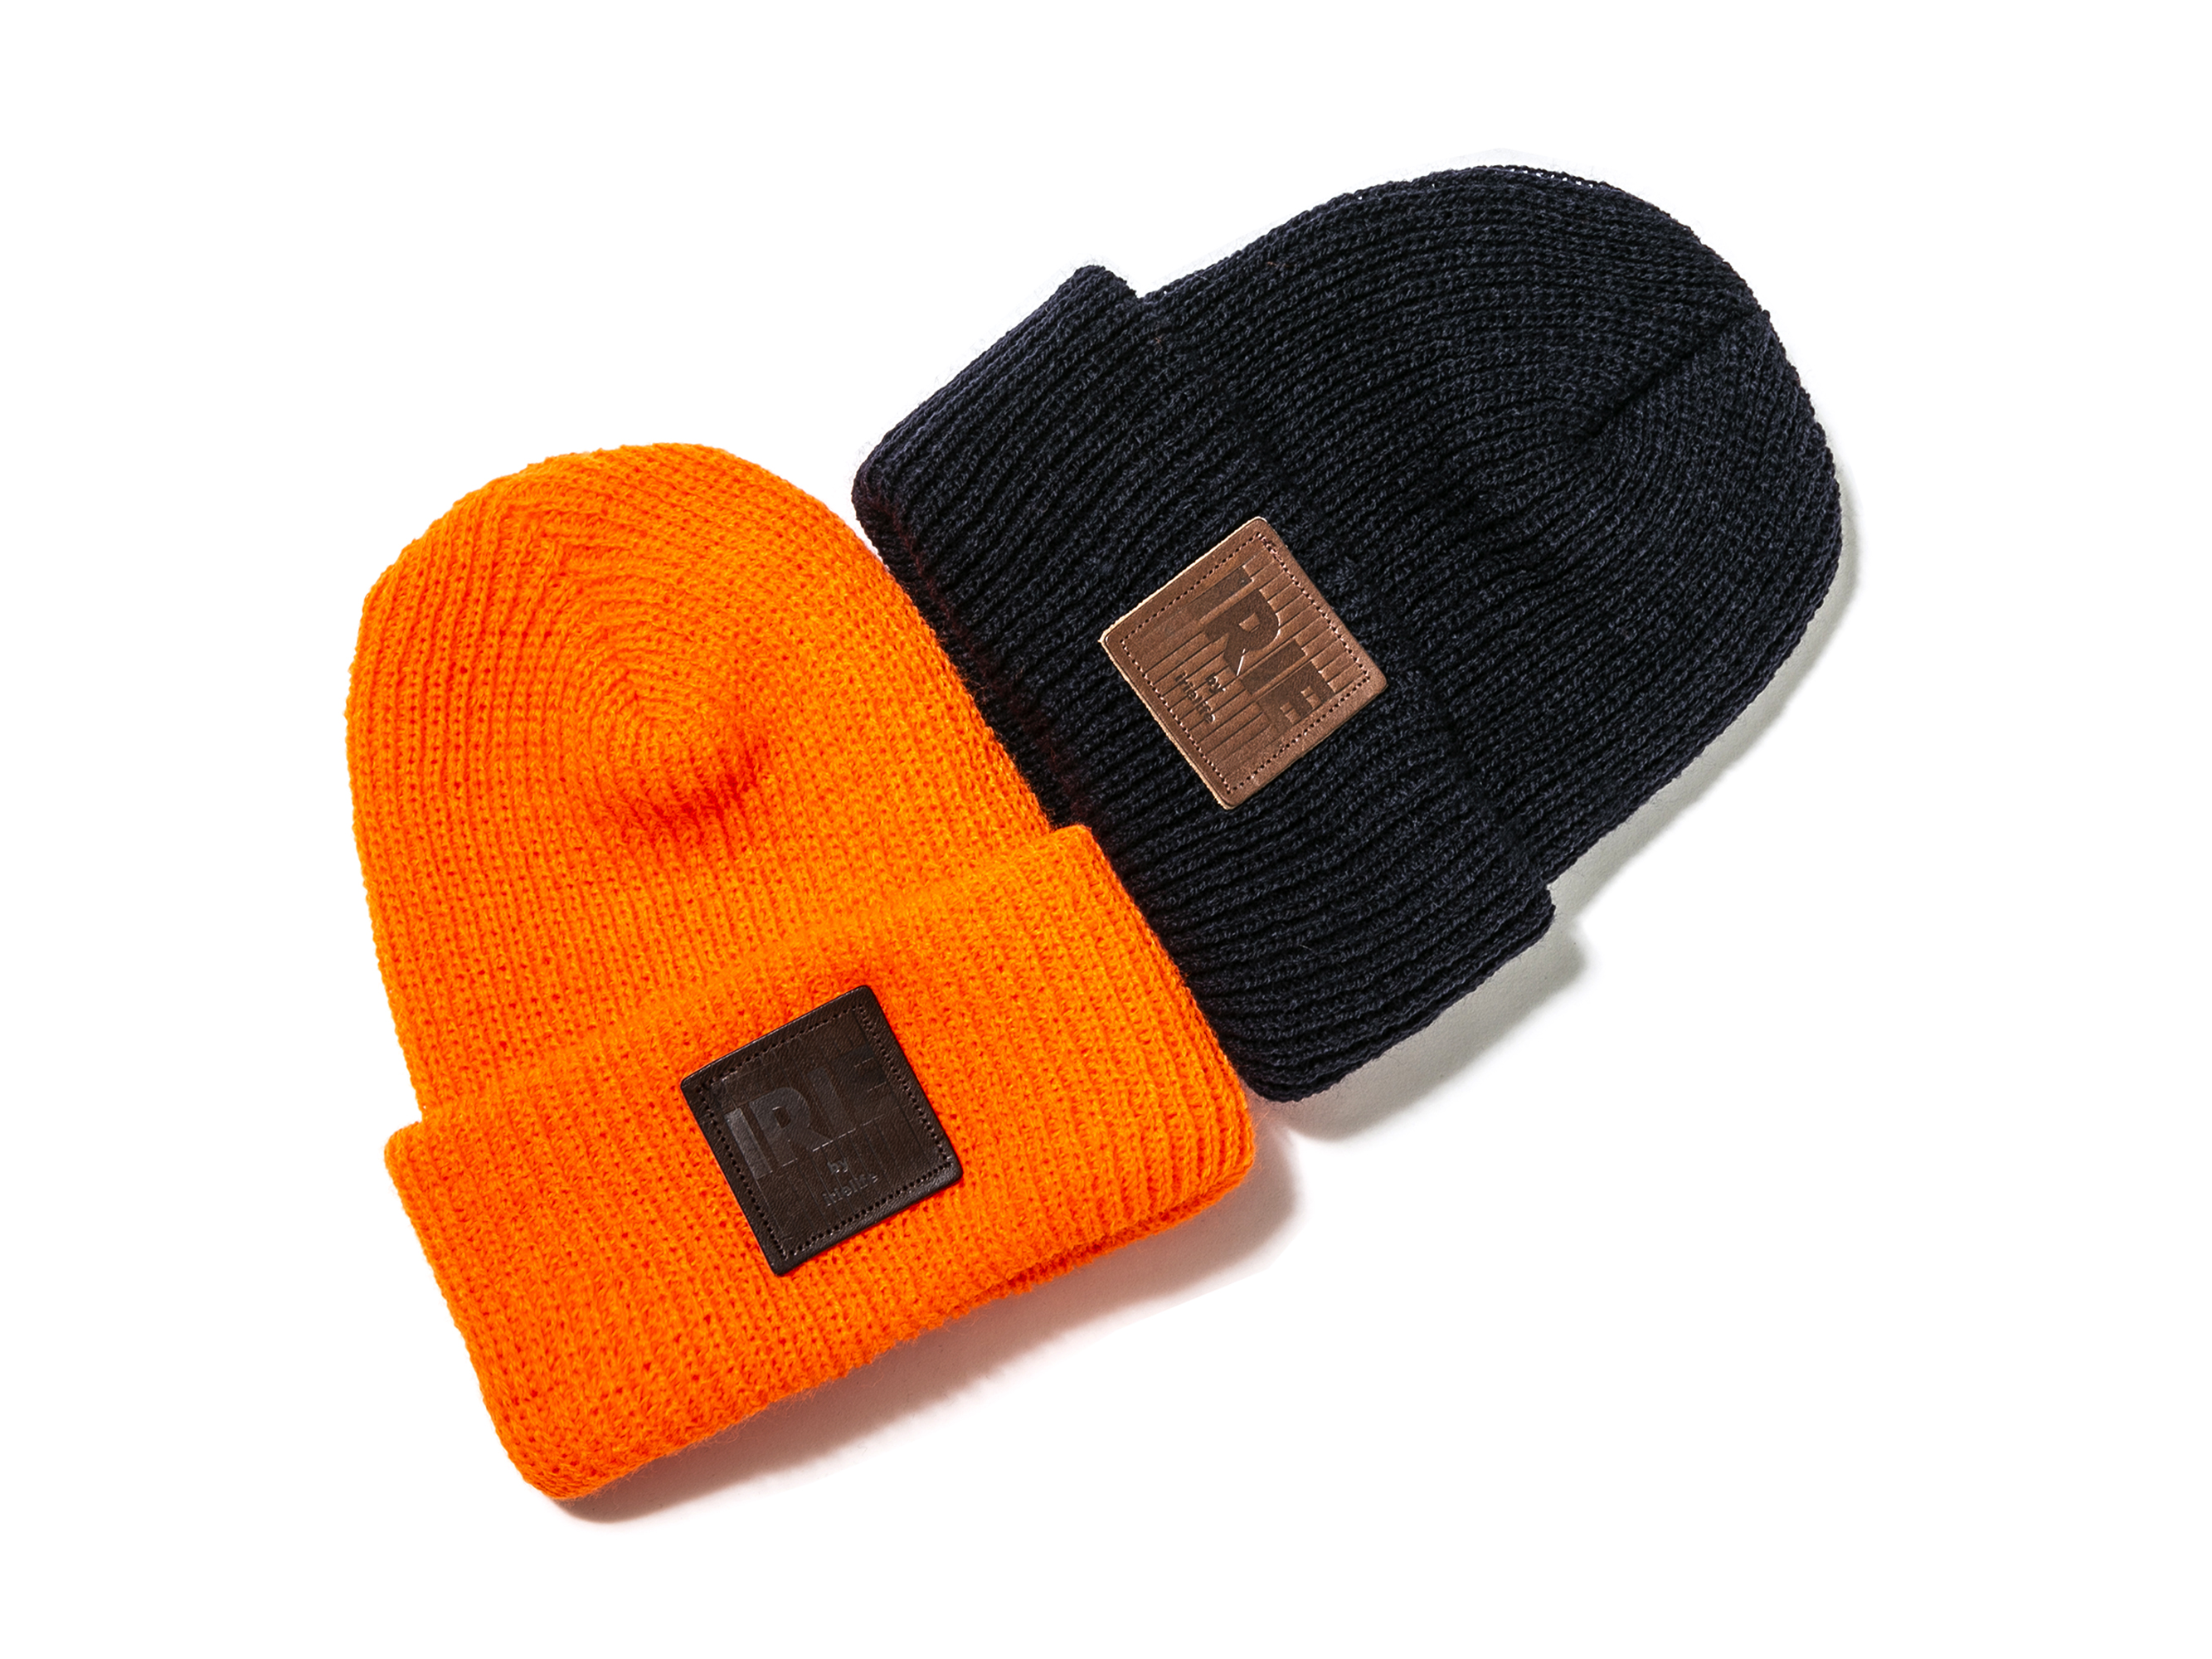 【20% OFF】LEATHER PATCH KNIT CAP - IRIE by irielife